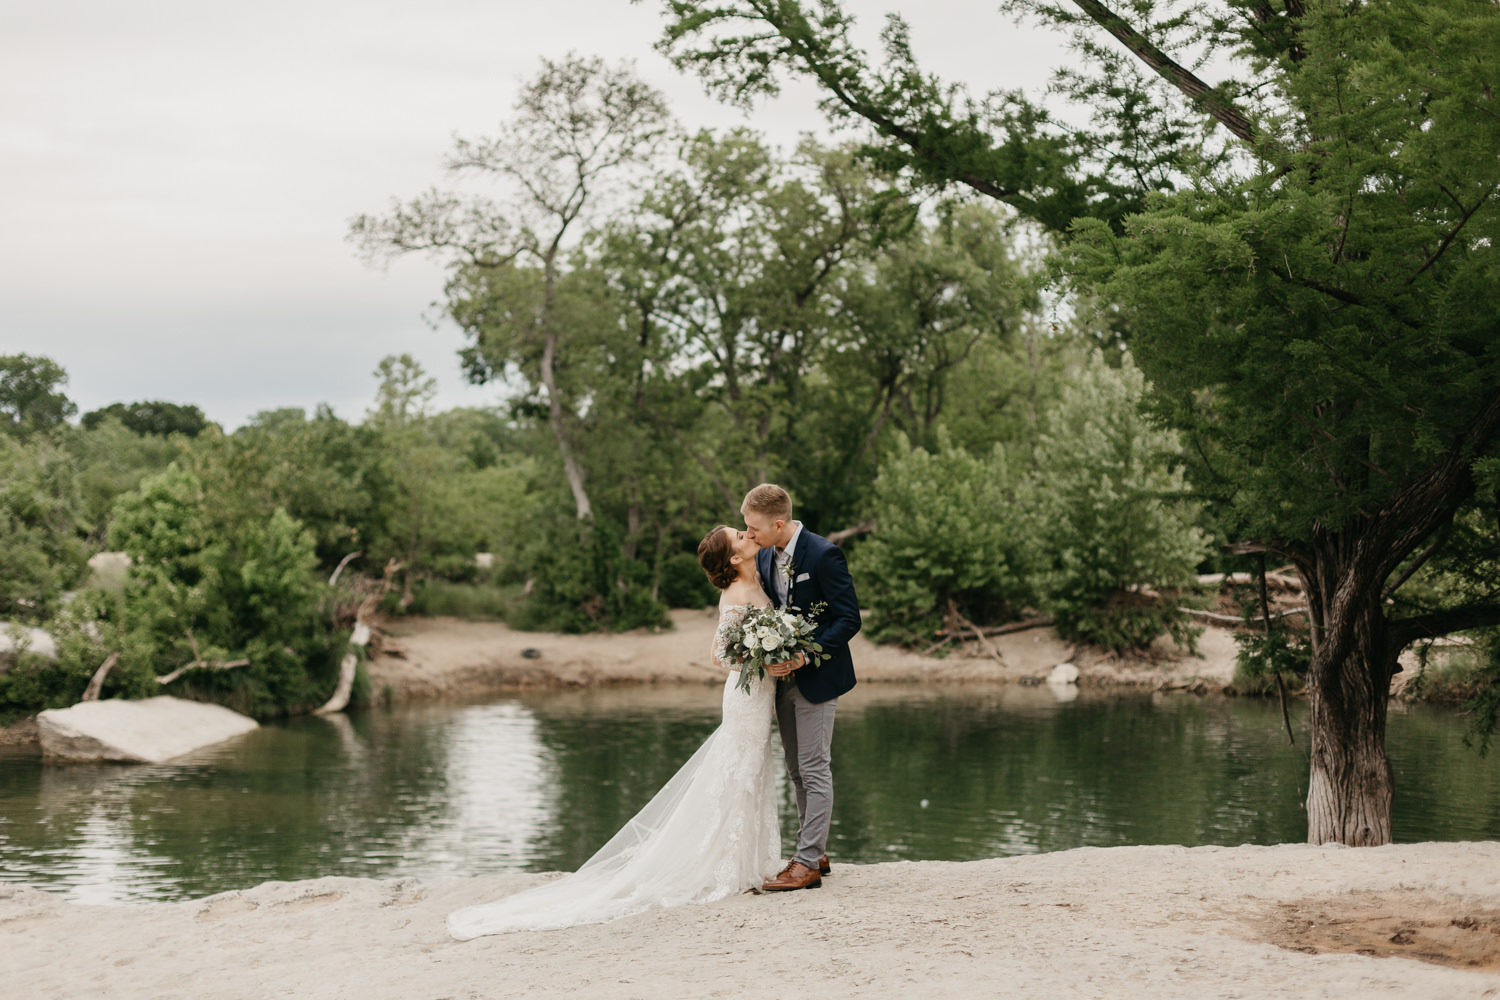 HaileyDylan_Austin Elopement Photographer Austin Wedding Photographer-99.jpg